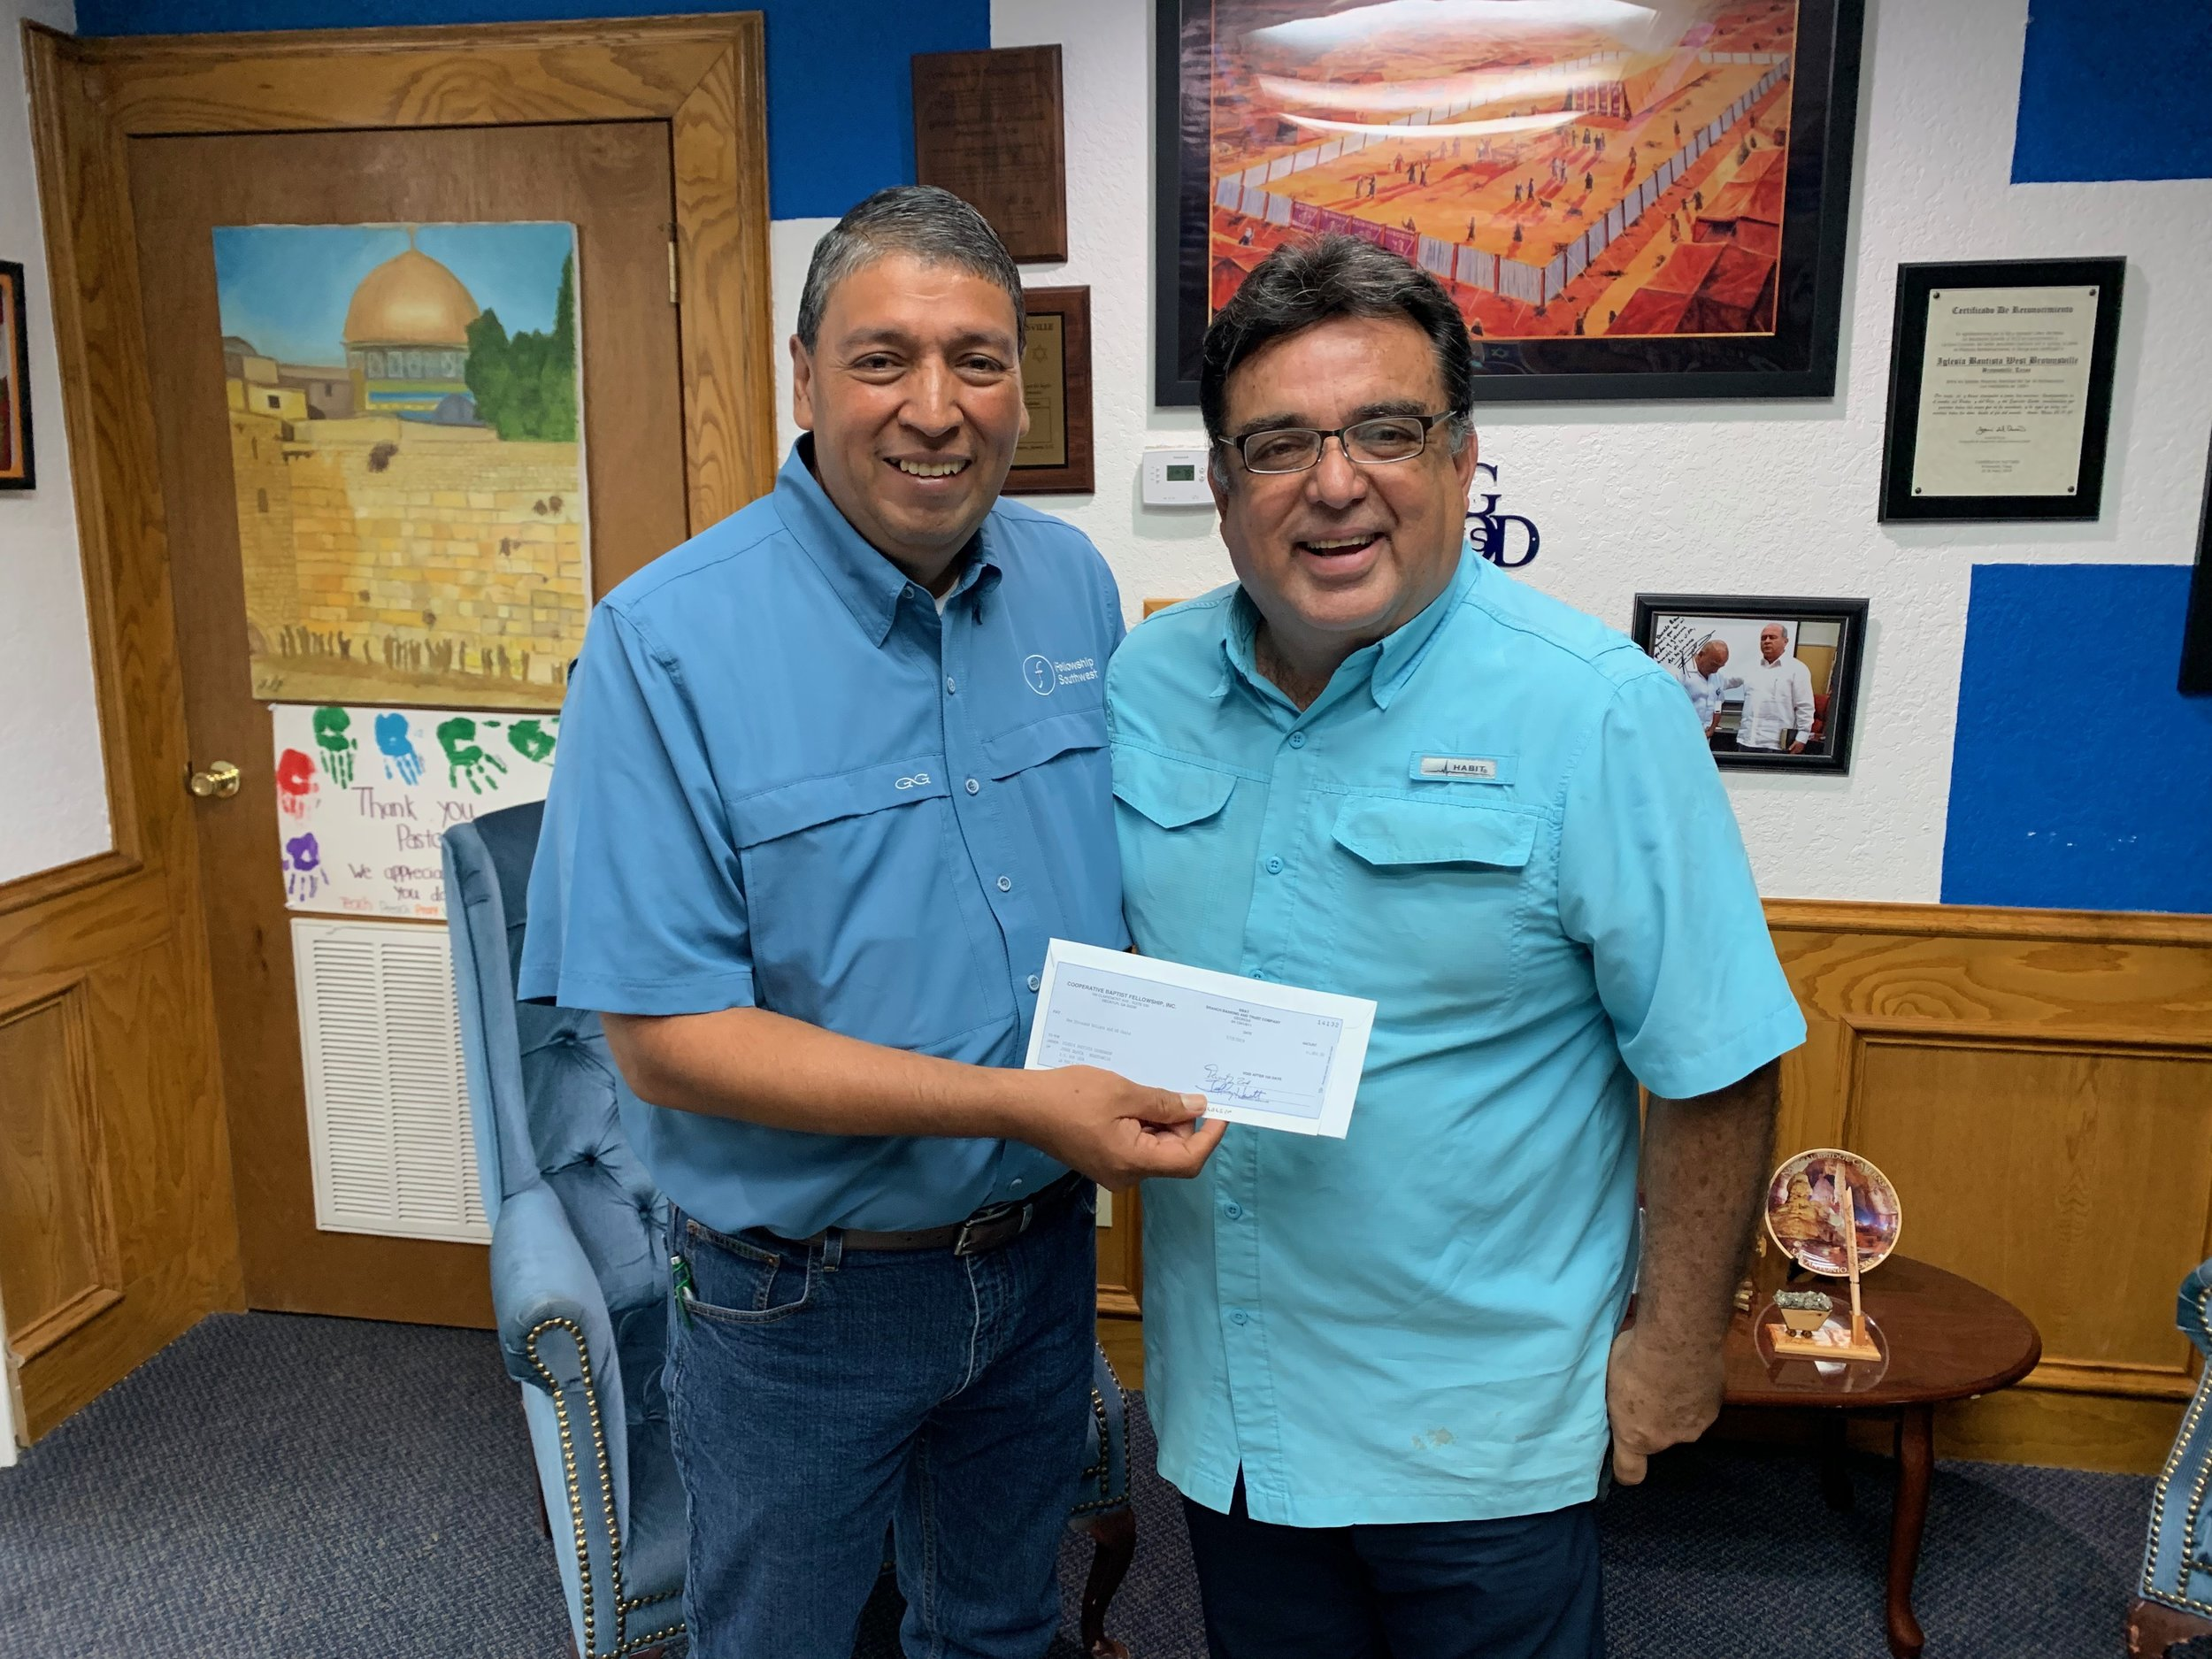 Jorge Zapata (left) of CBF Texas/Fellowship Southwest, presents a check for $1,000 to Rogelio Perez, pastor of Iglesia Bautista Capernaum in Brownsville, Texas. Twice a week, the congregation feeds asylum seekers on the border bridge between Brownsville and Matamoros, Mexico.